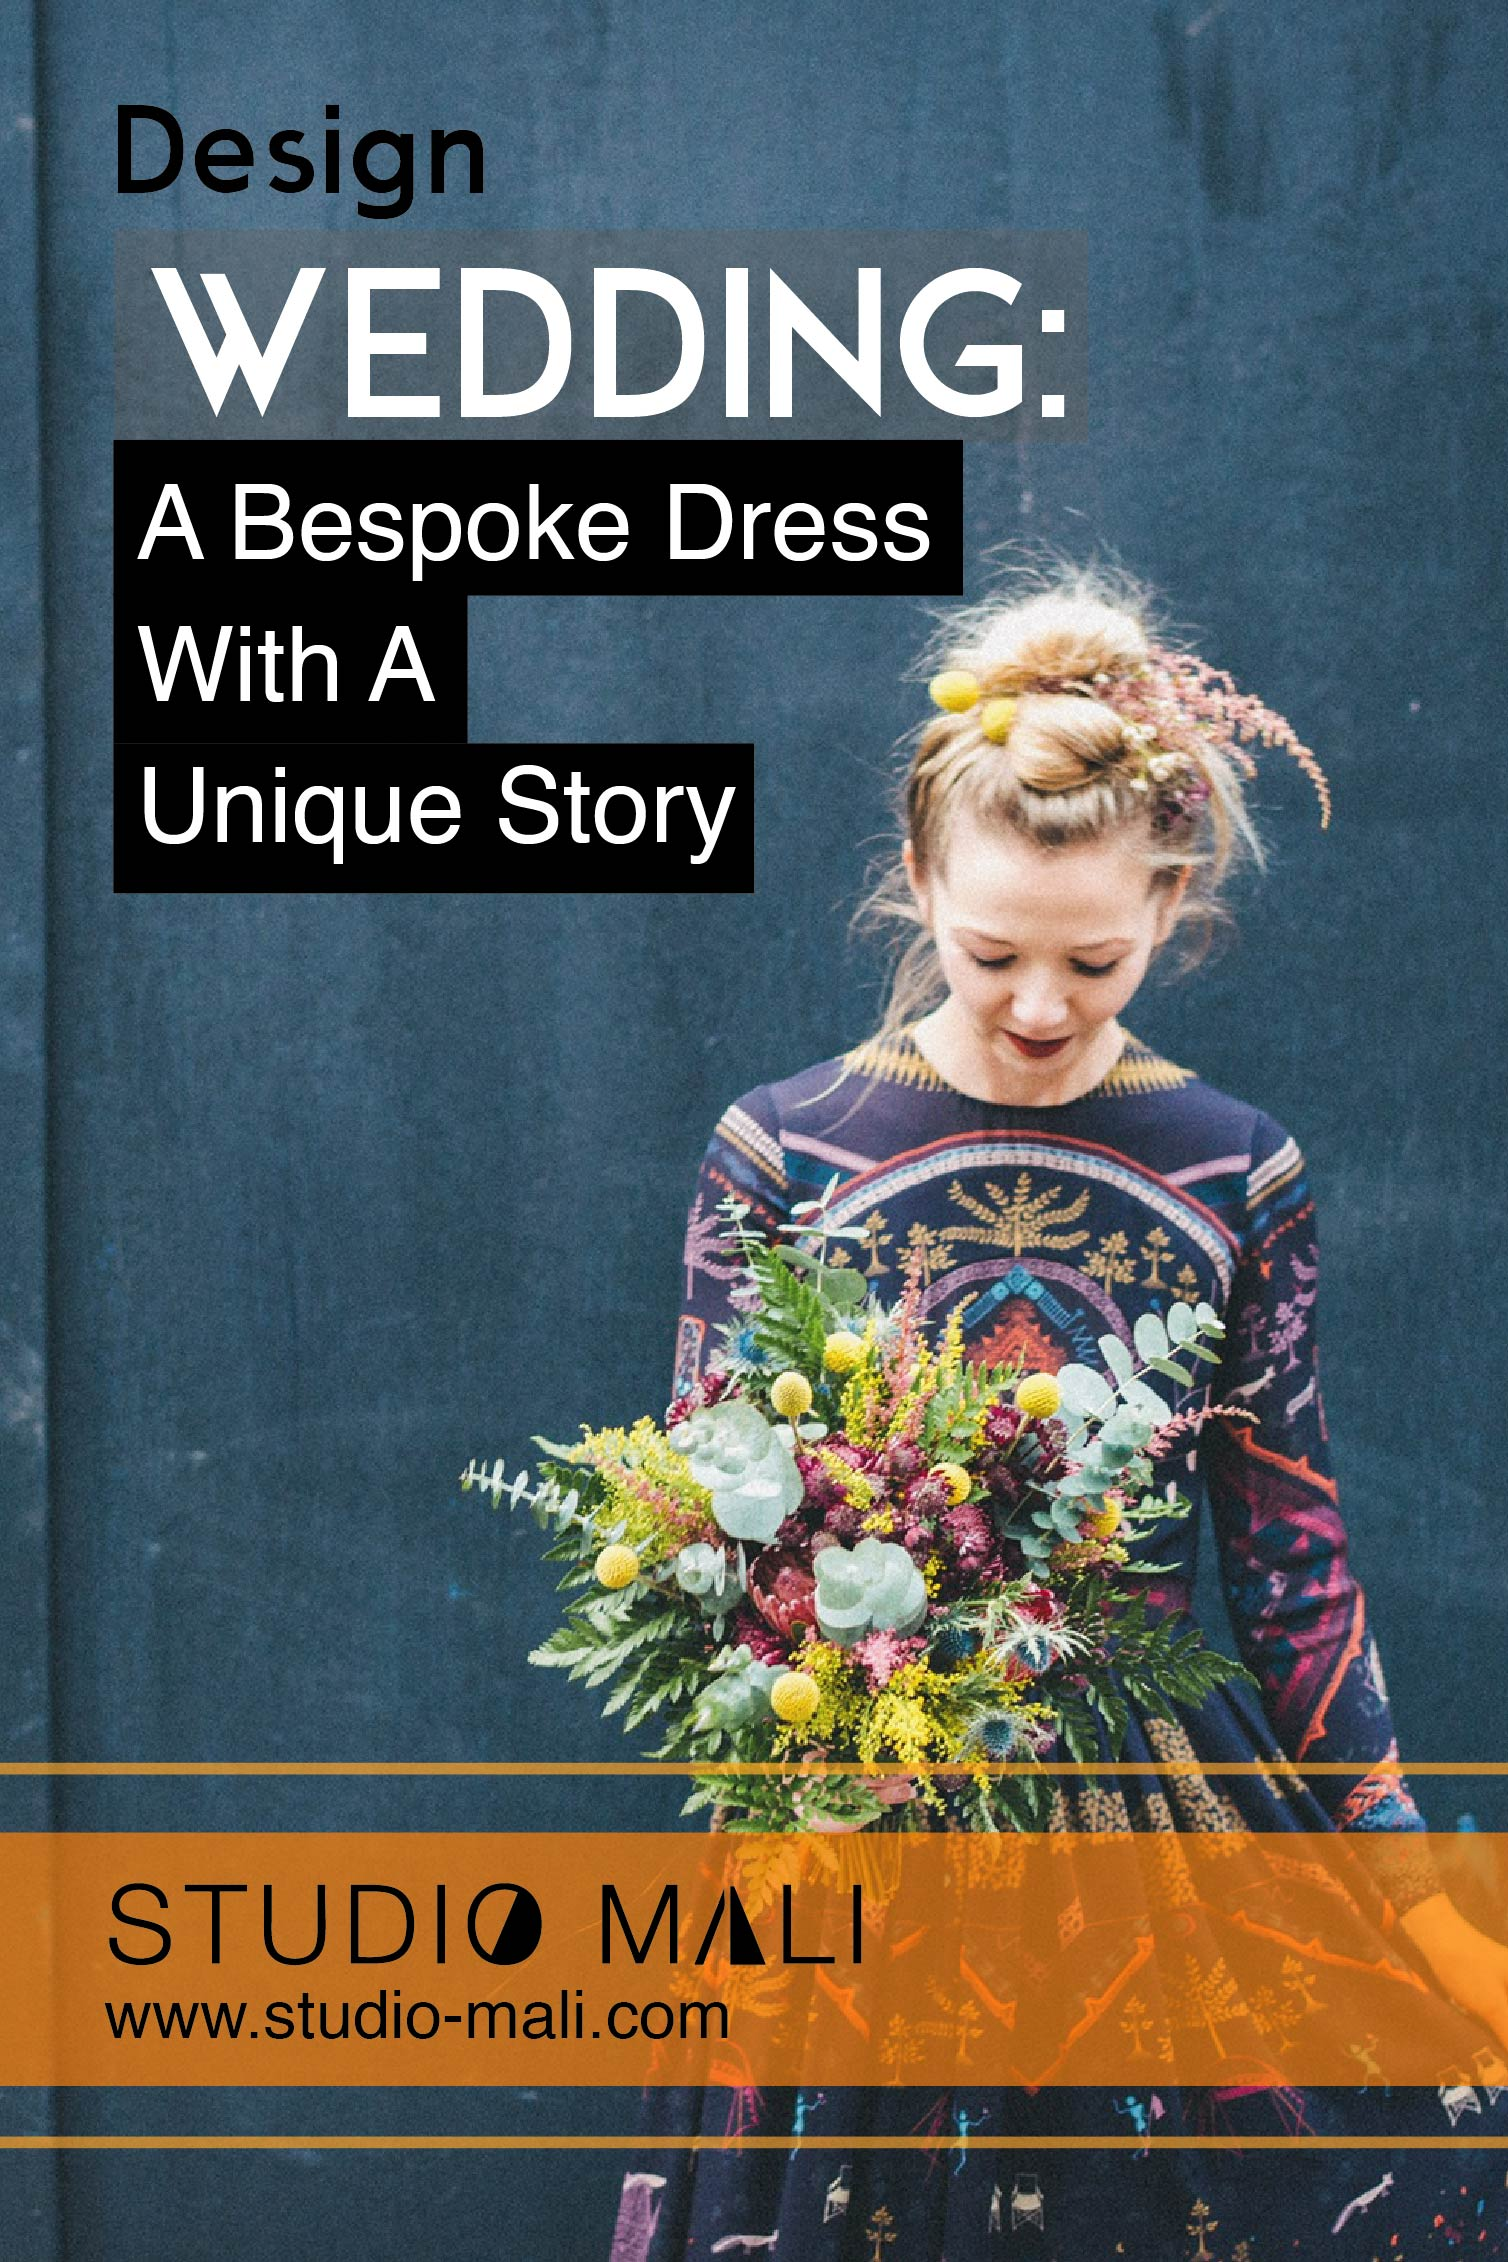 Wedding - A Bespoke Dress With A Unique Story, by Studio Mali